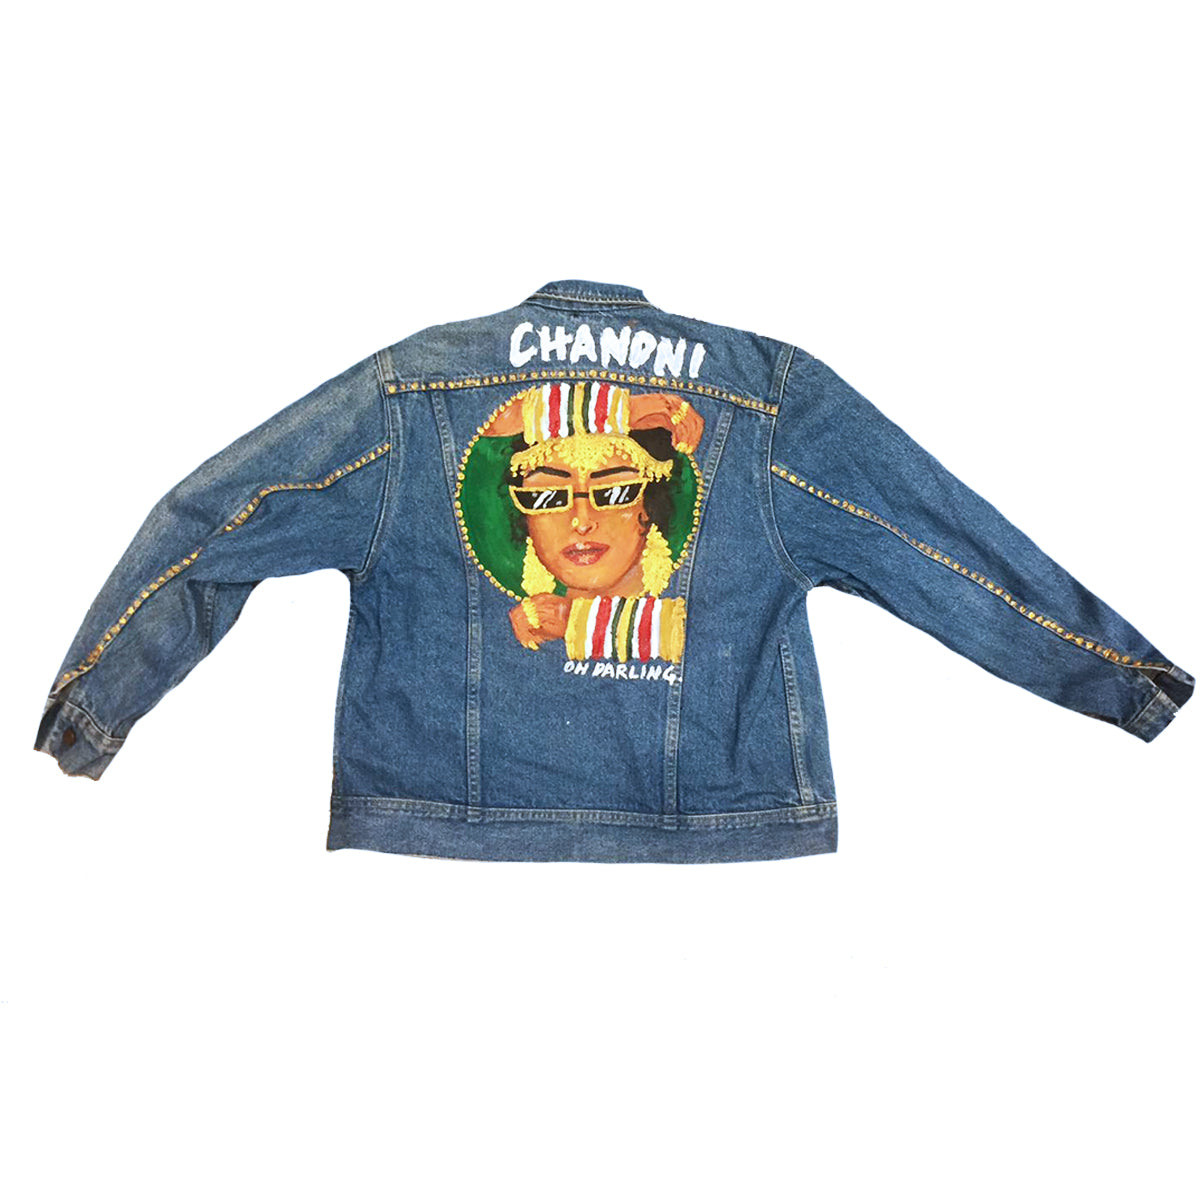 CHANDNI - Hand Painted Jacket